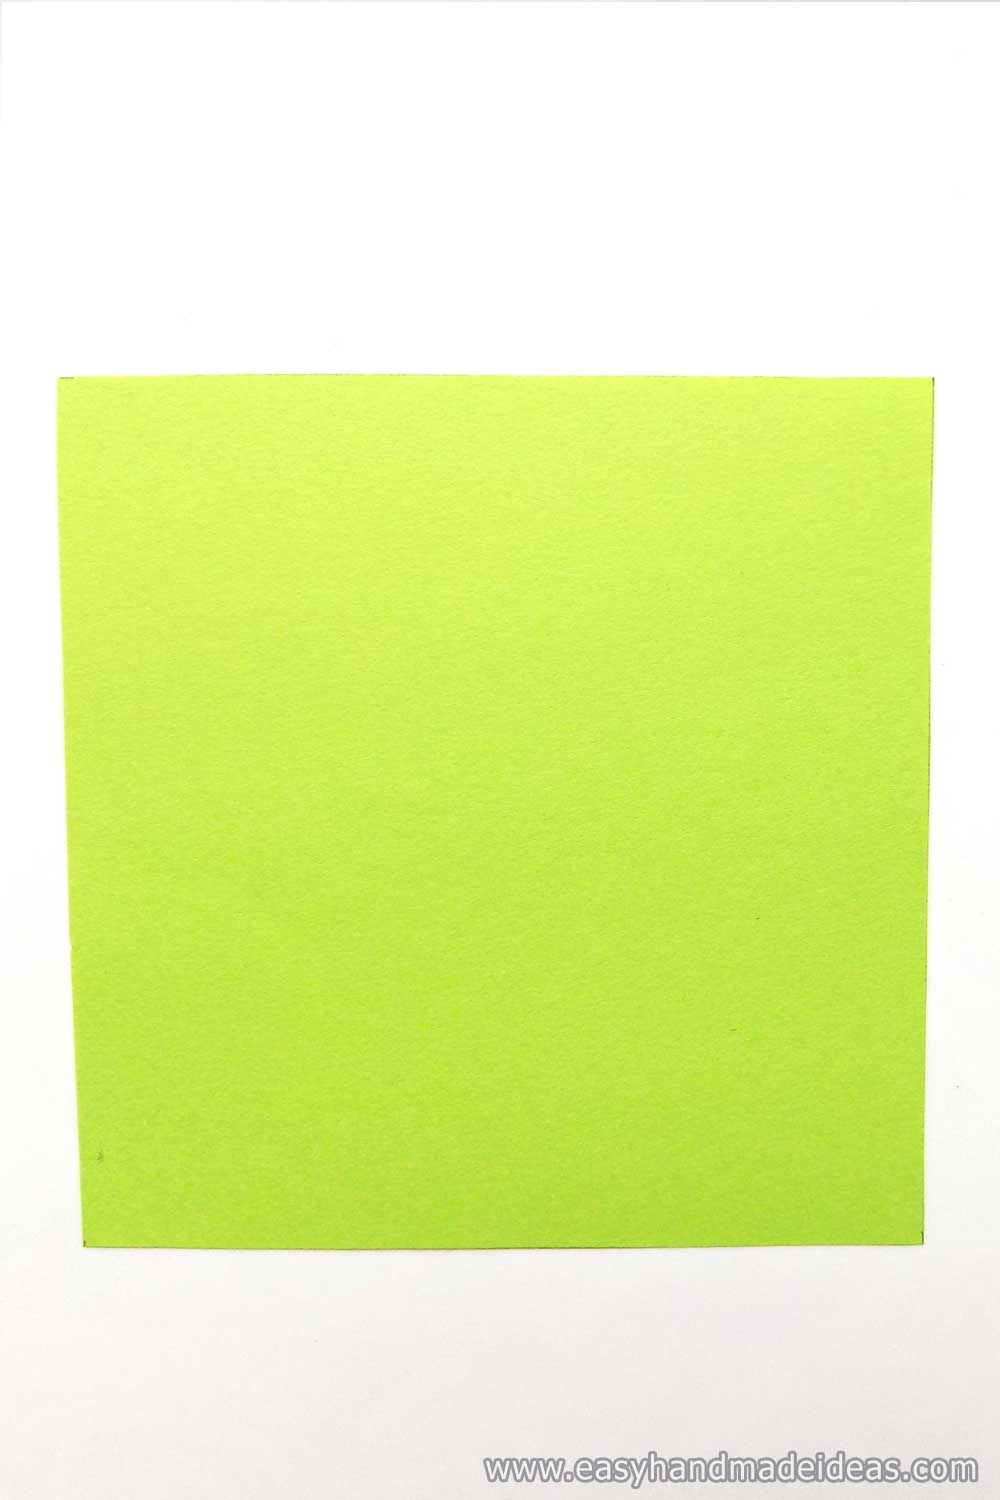 Square of Green Paper